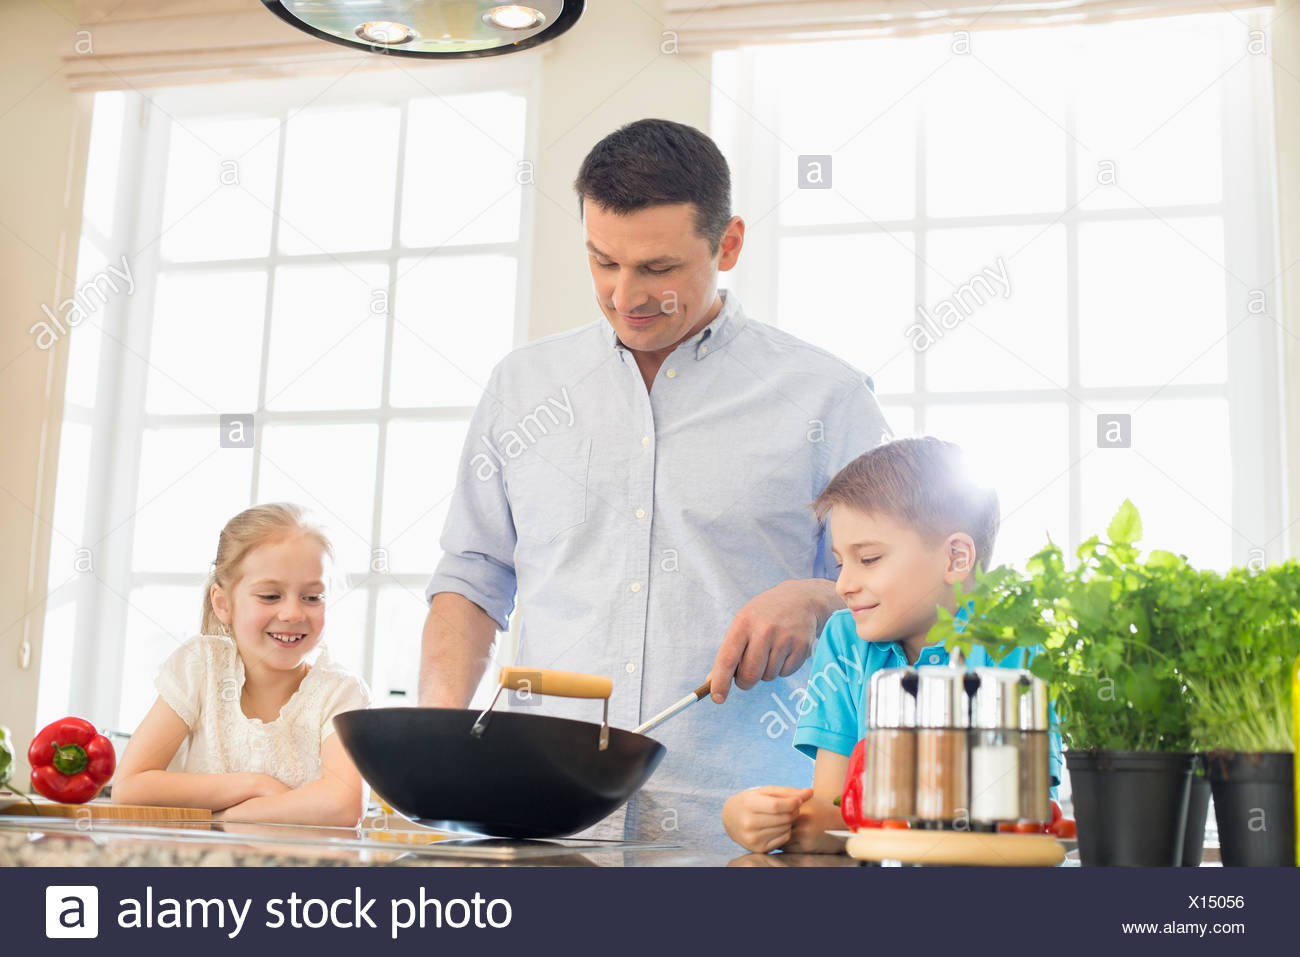 Children looking at father preparing food in kitchen - Stock Image